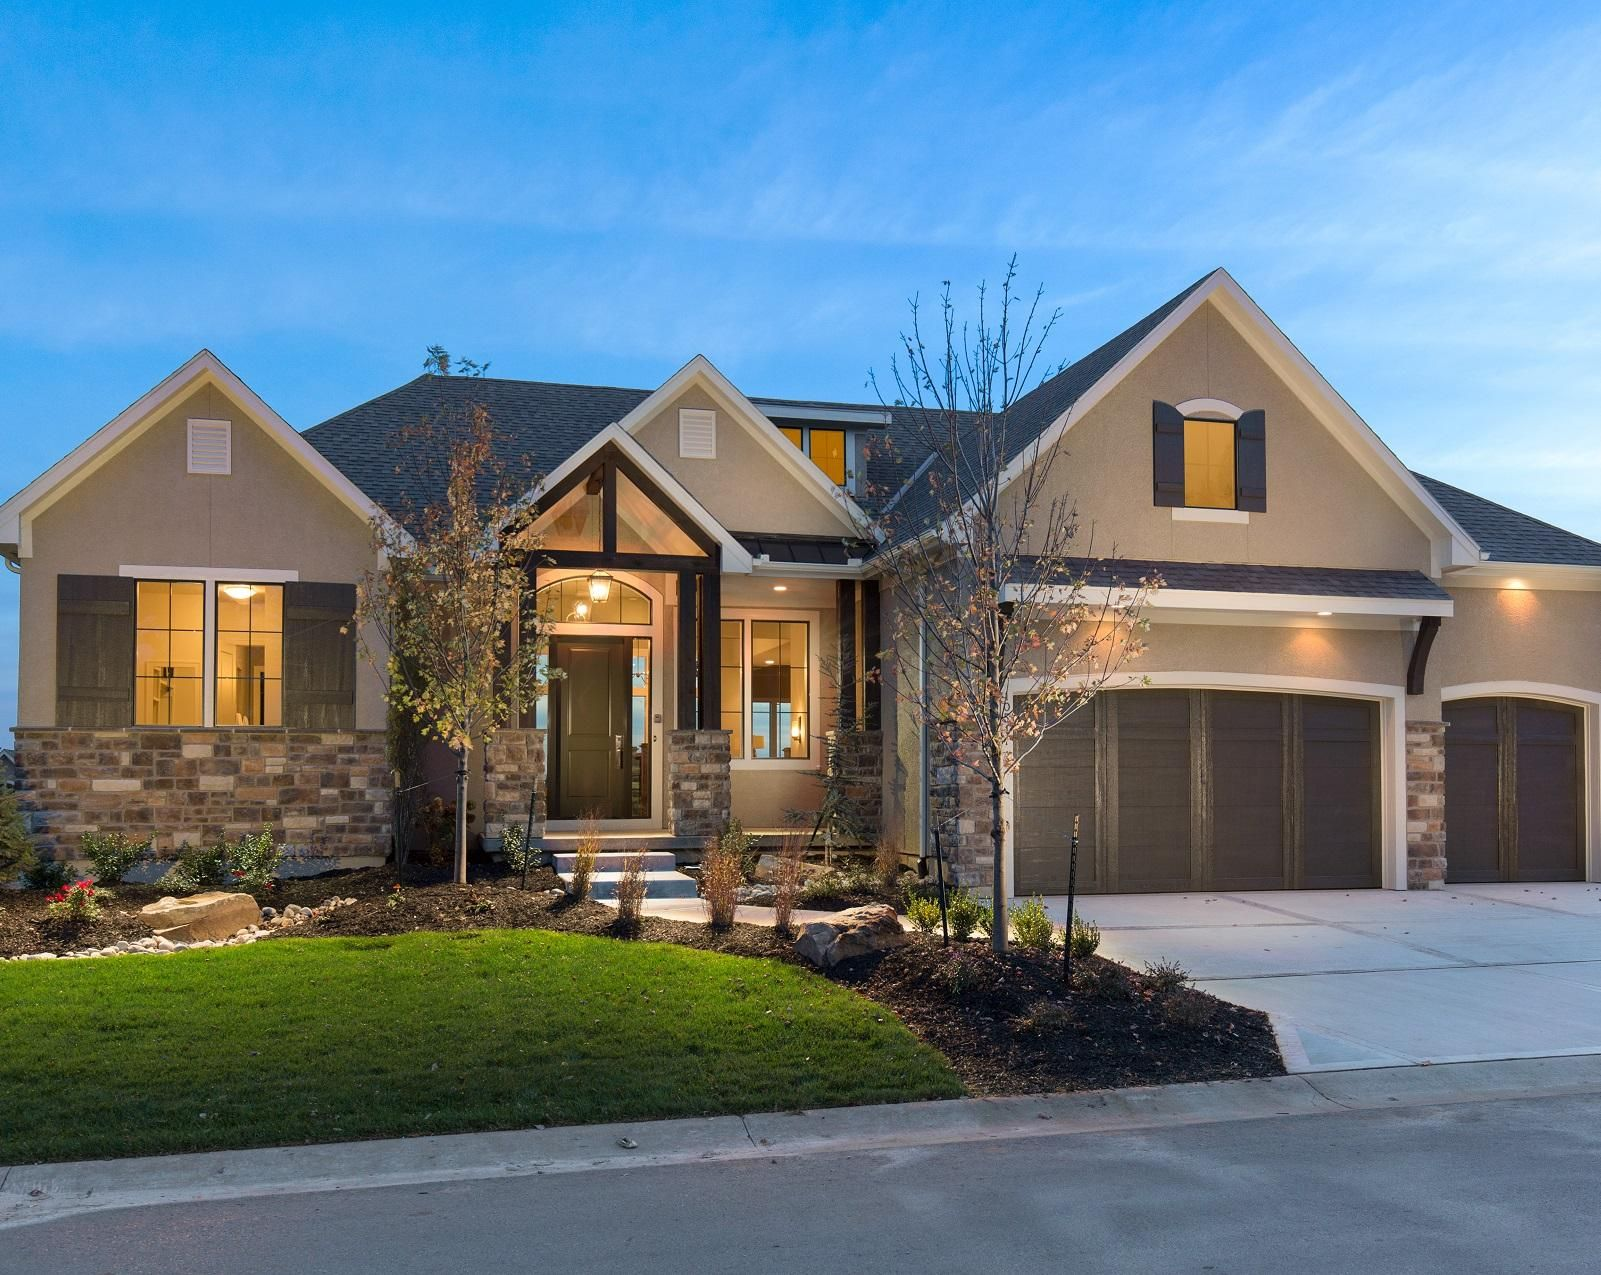 Starr Homes Kansas City Home Builders Model Homes Ranch Style Homes Luxury Homes Dream Houses